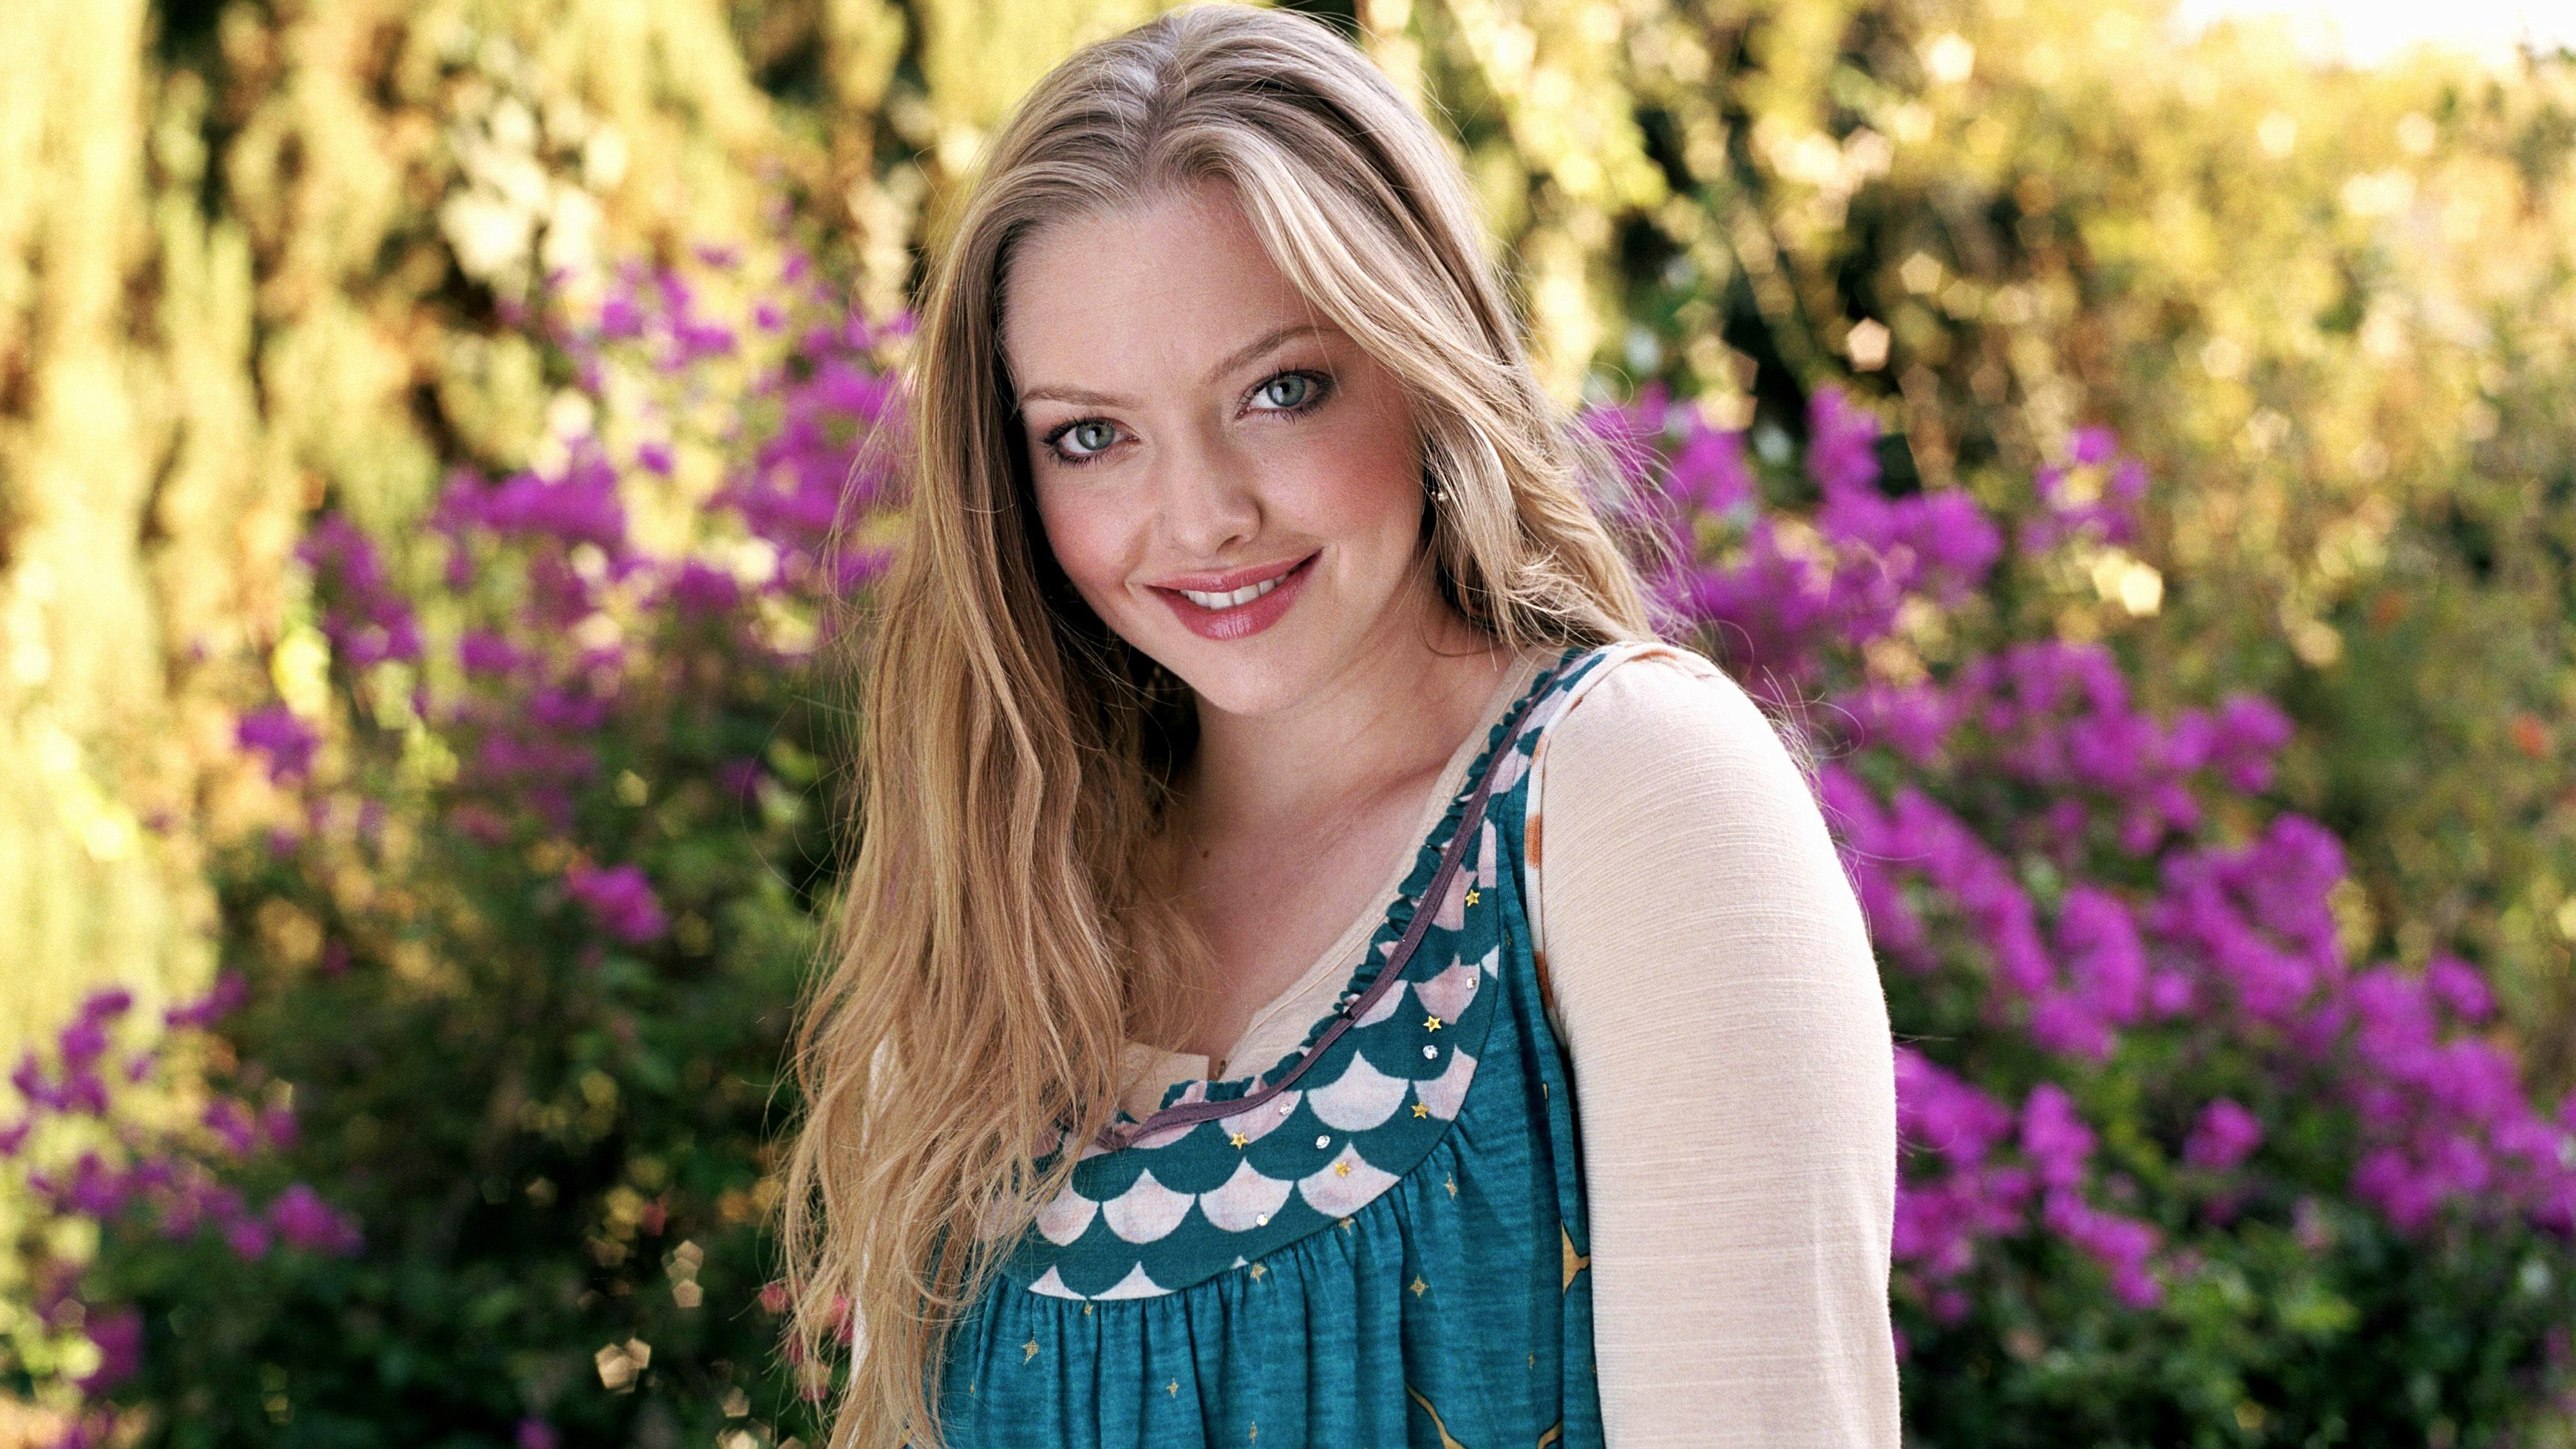 Hollywood Actress Amanda Seyfried wallpaper